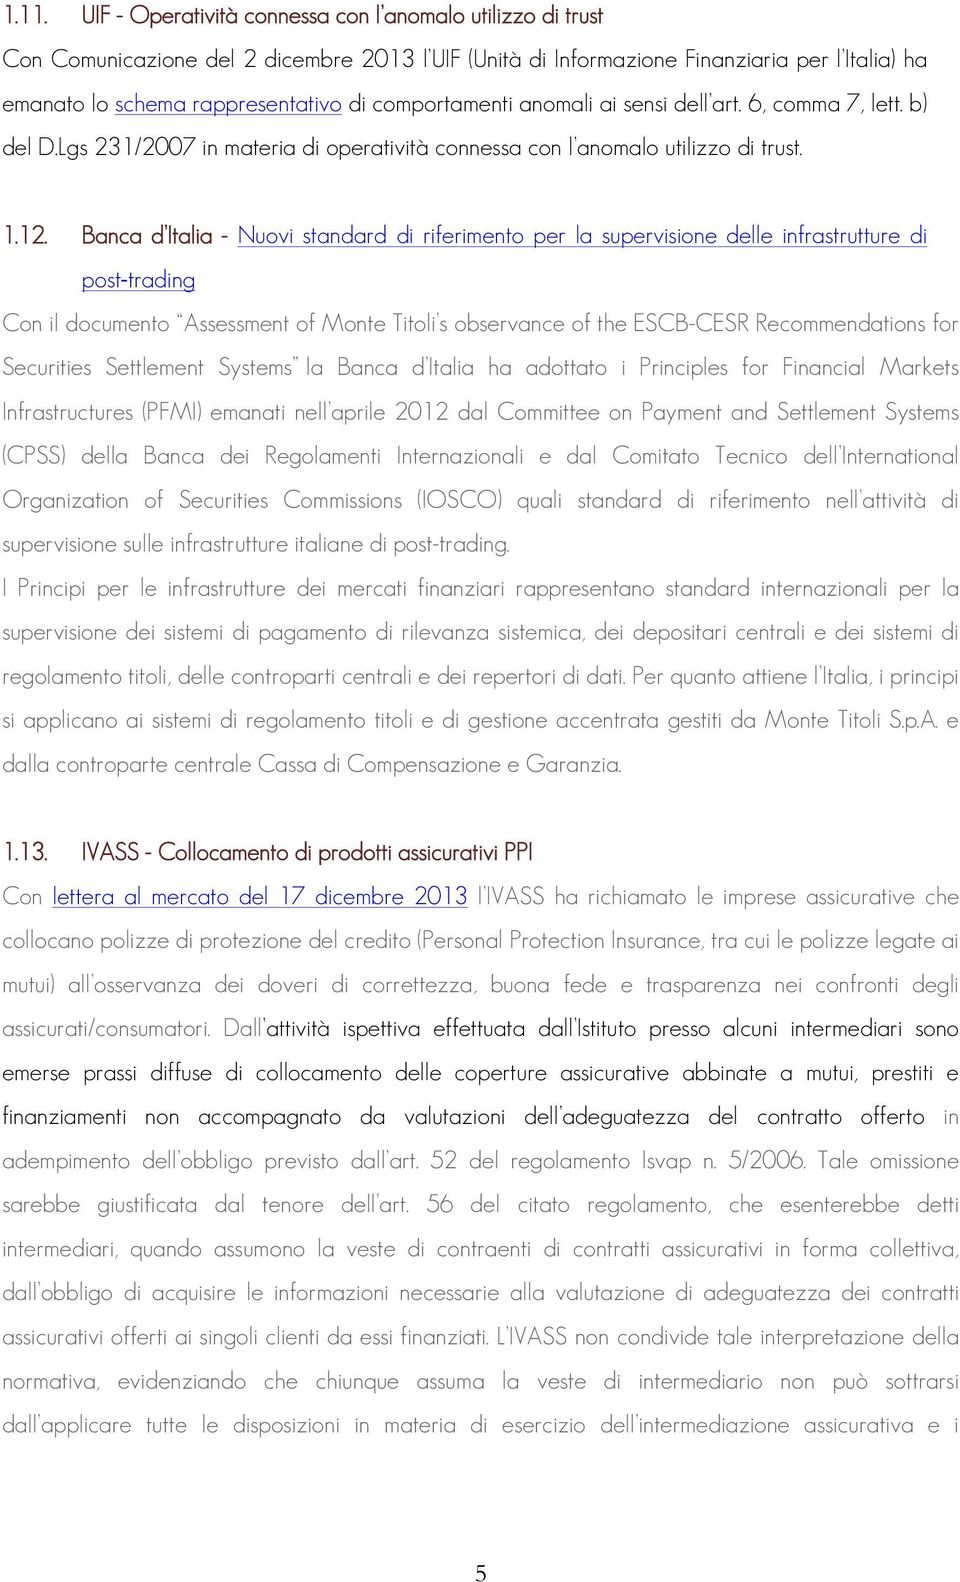 Banca d Italia - Nuovi standard di riferimento per la supervisione delle infrastrutture di post-trading Con il documento Assessment of Monte Titoli s observance of the ESCB-CESR Recommendations for